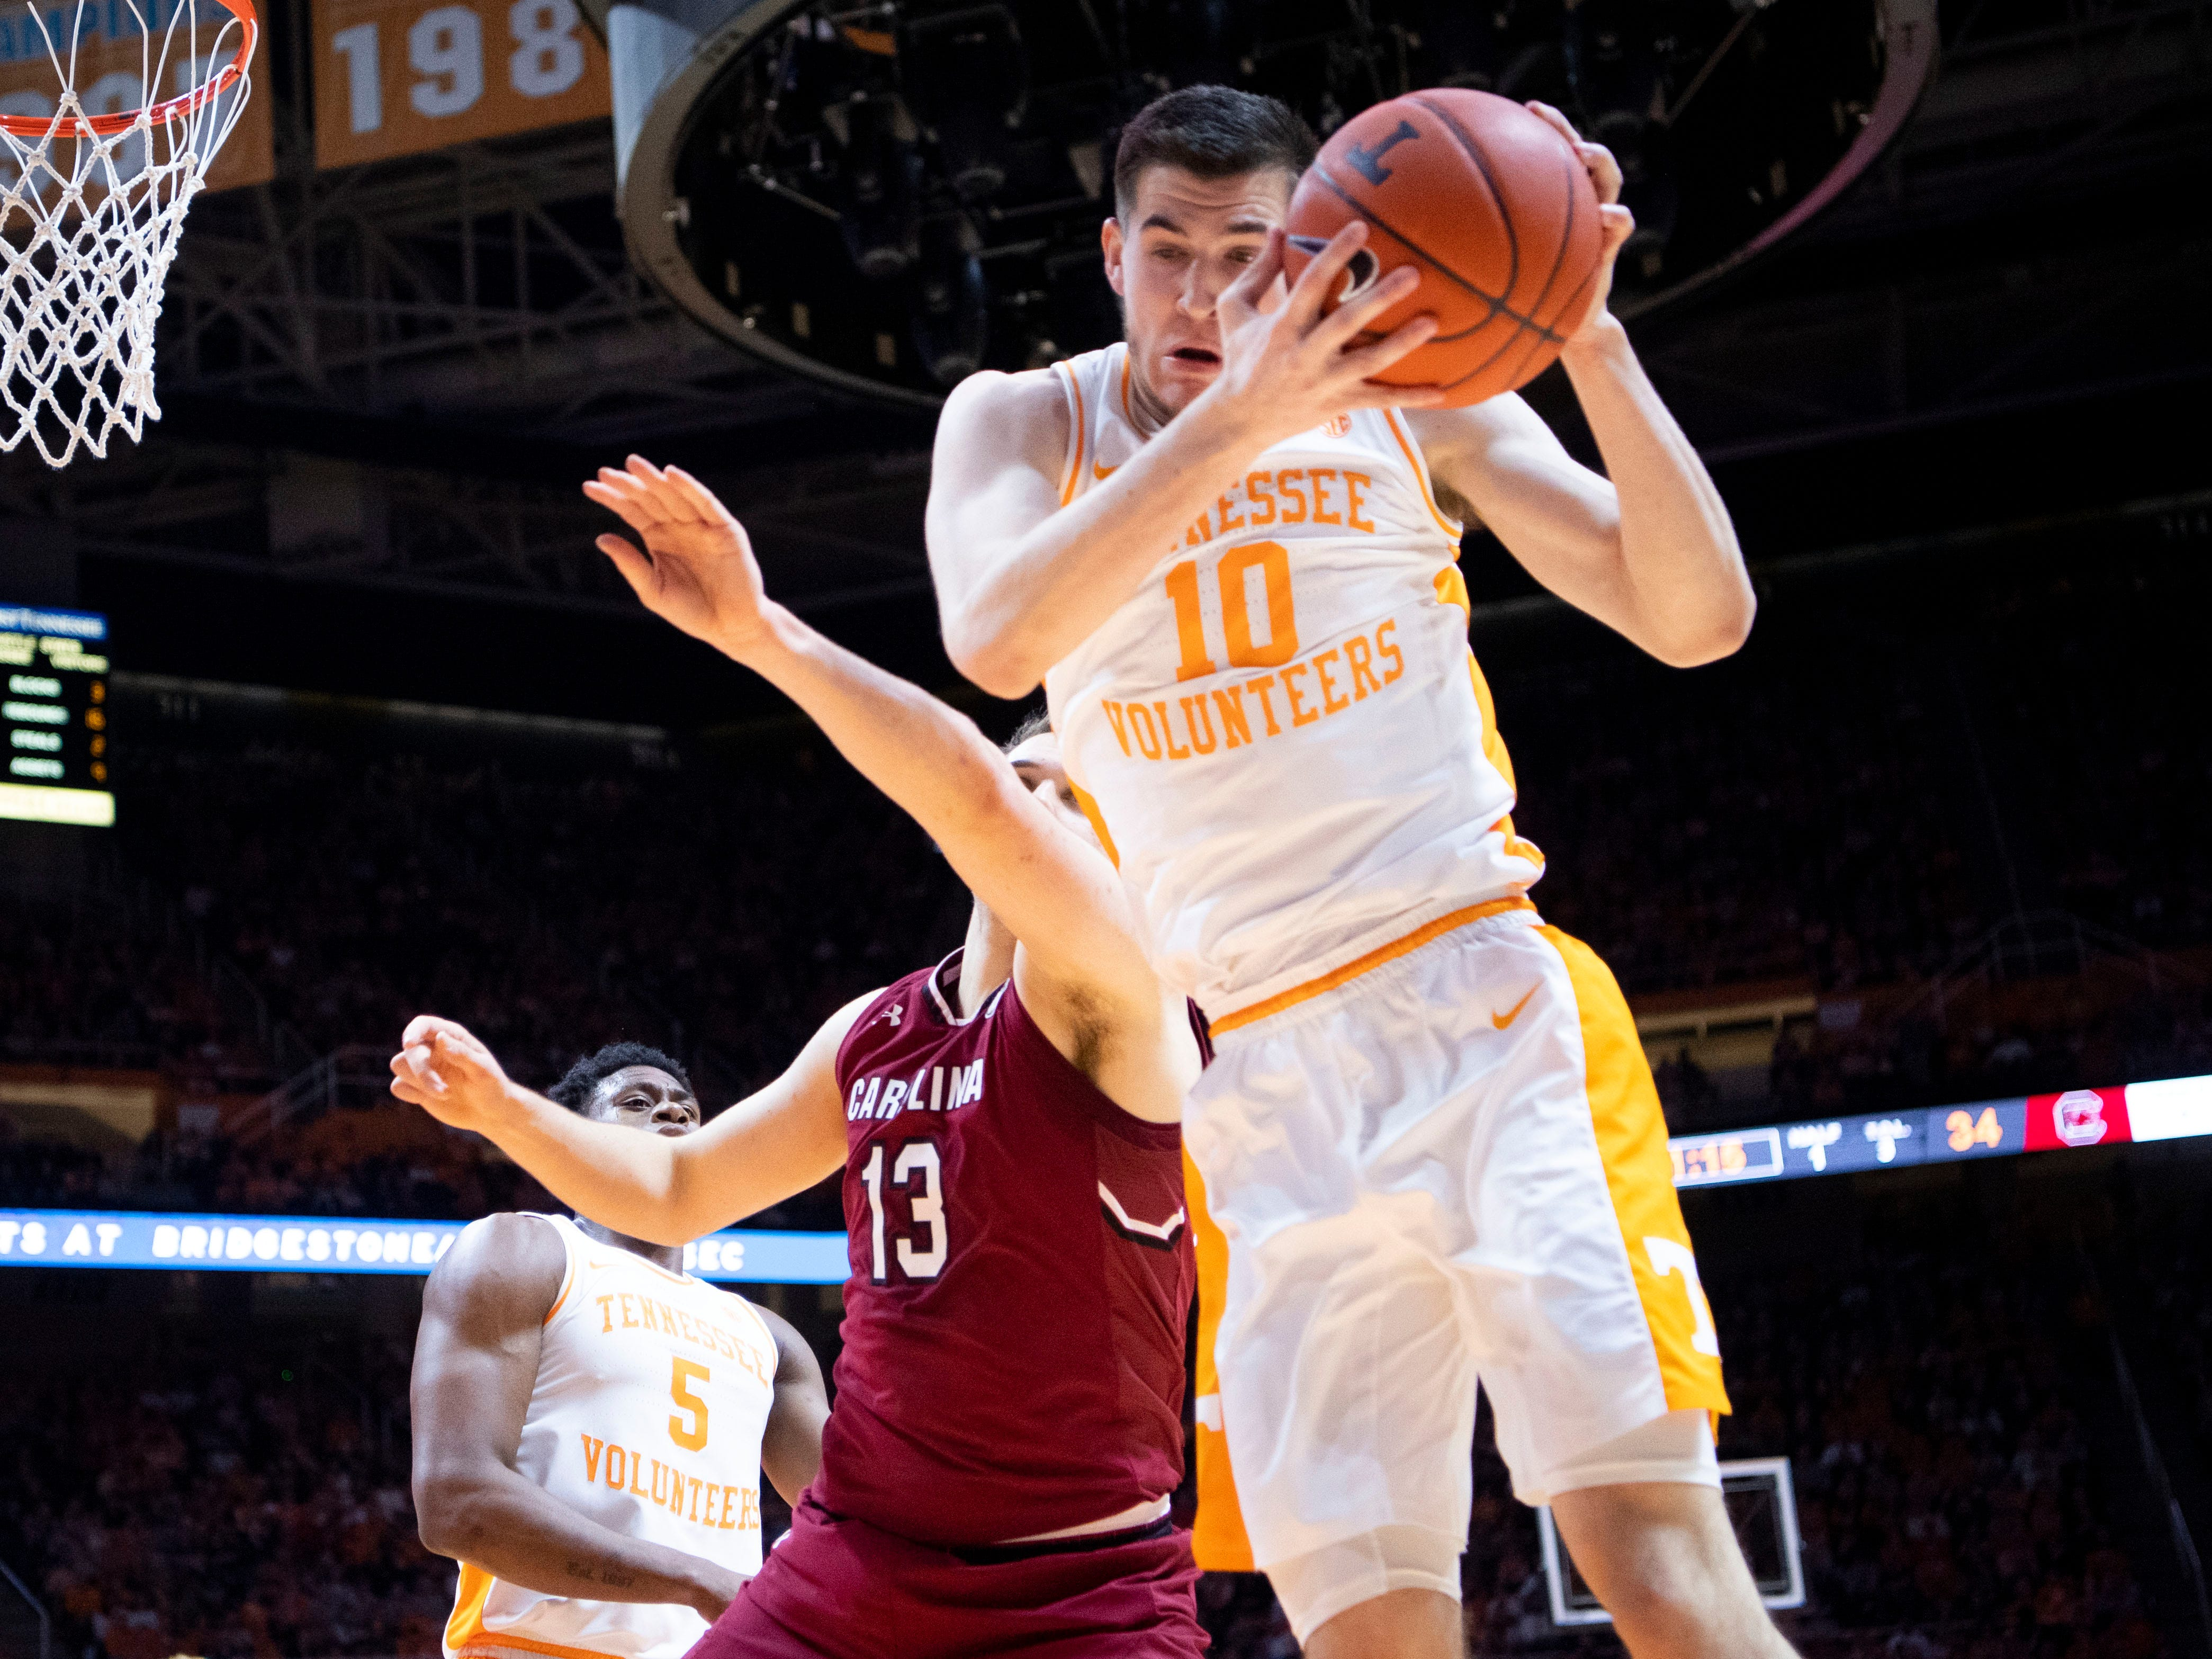 Tennessee's John Fulkerson (10) gets the rebound over South Carolina's Felipe Haase (13) on Wednesday, February 13, 2019.